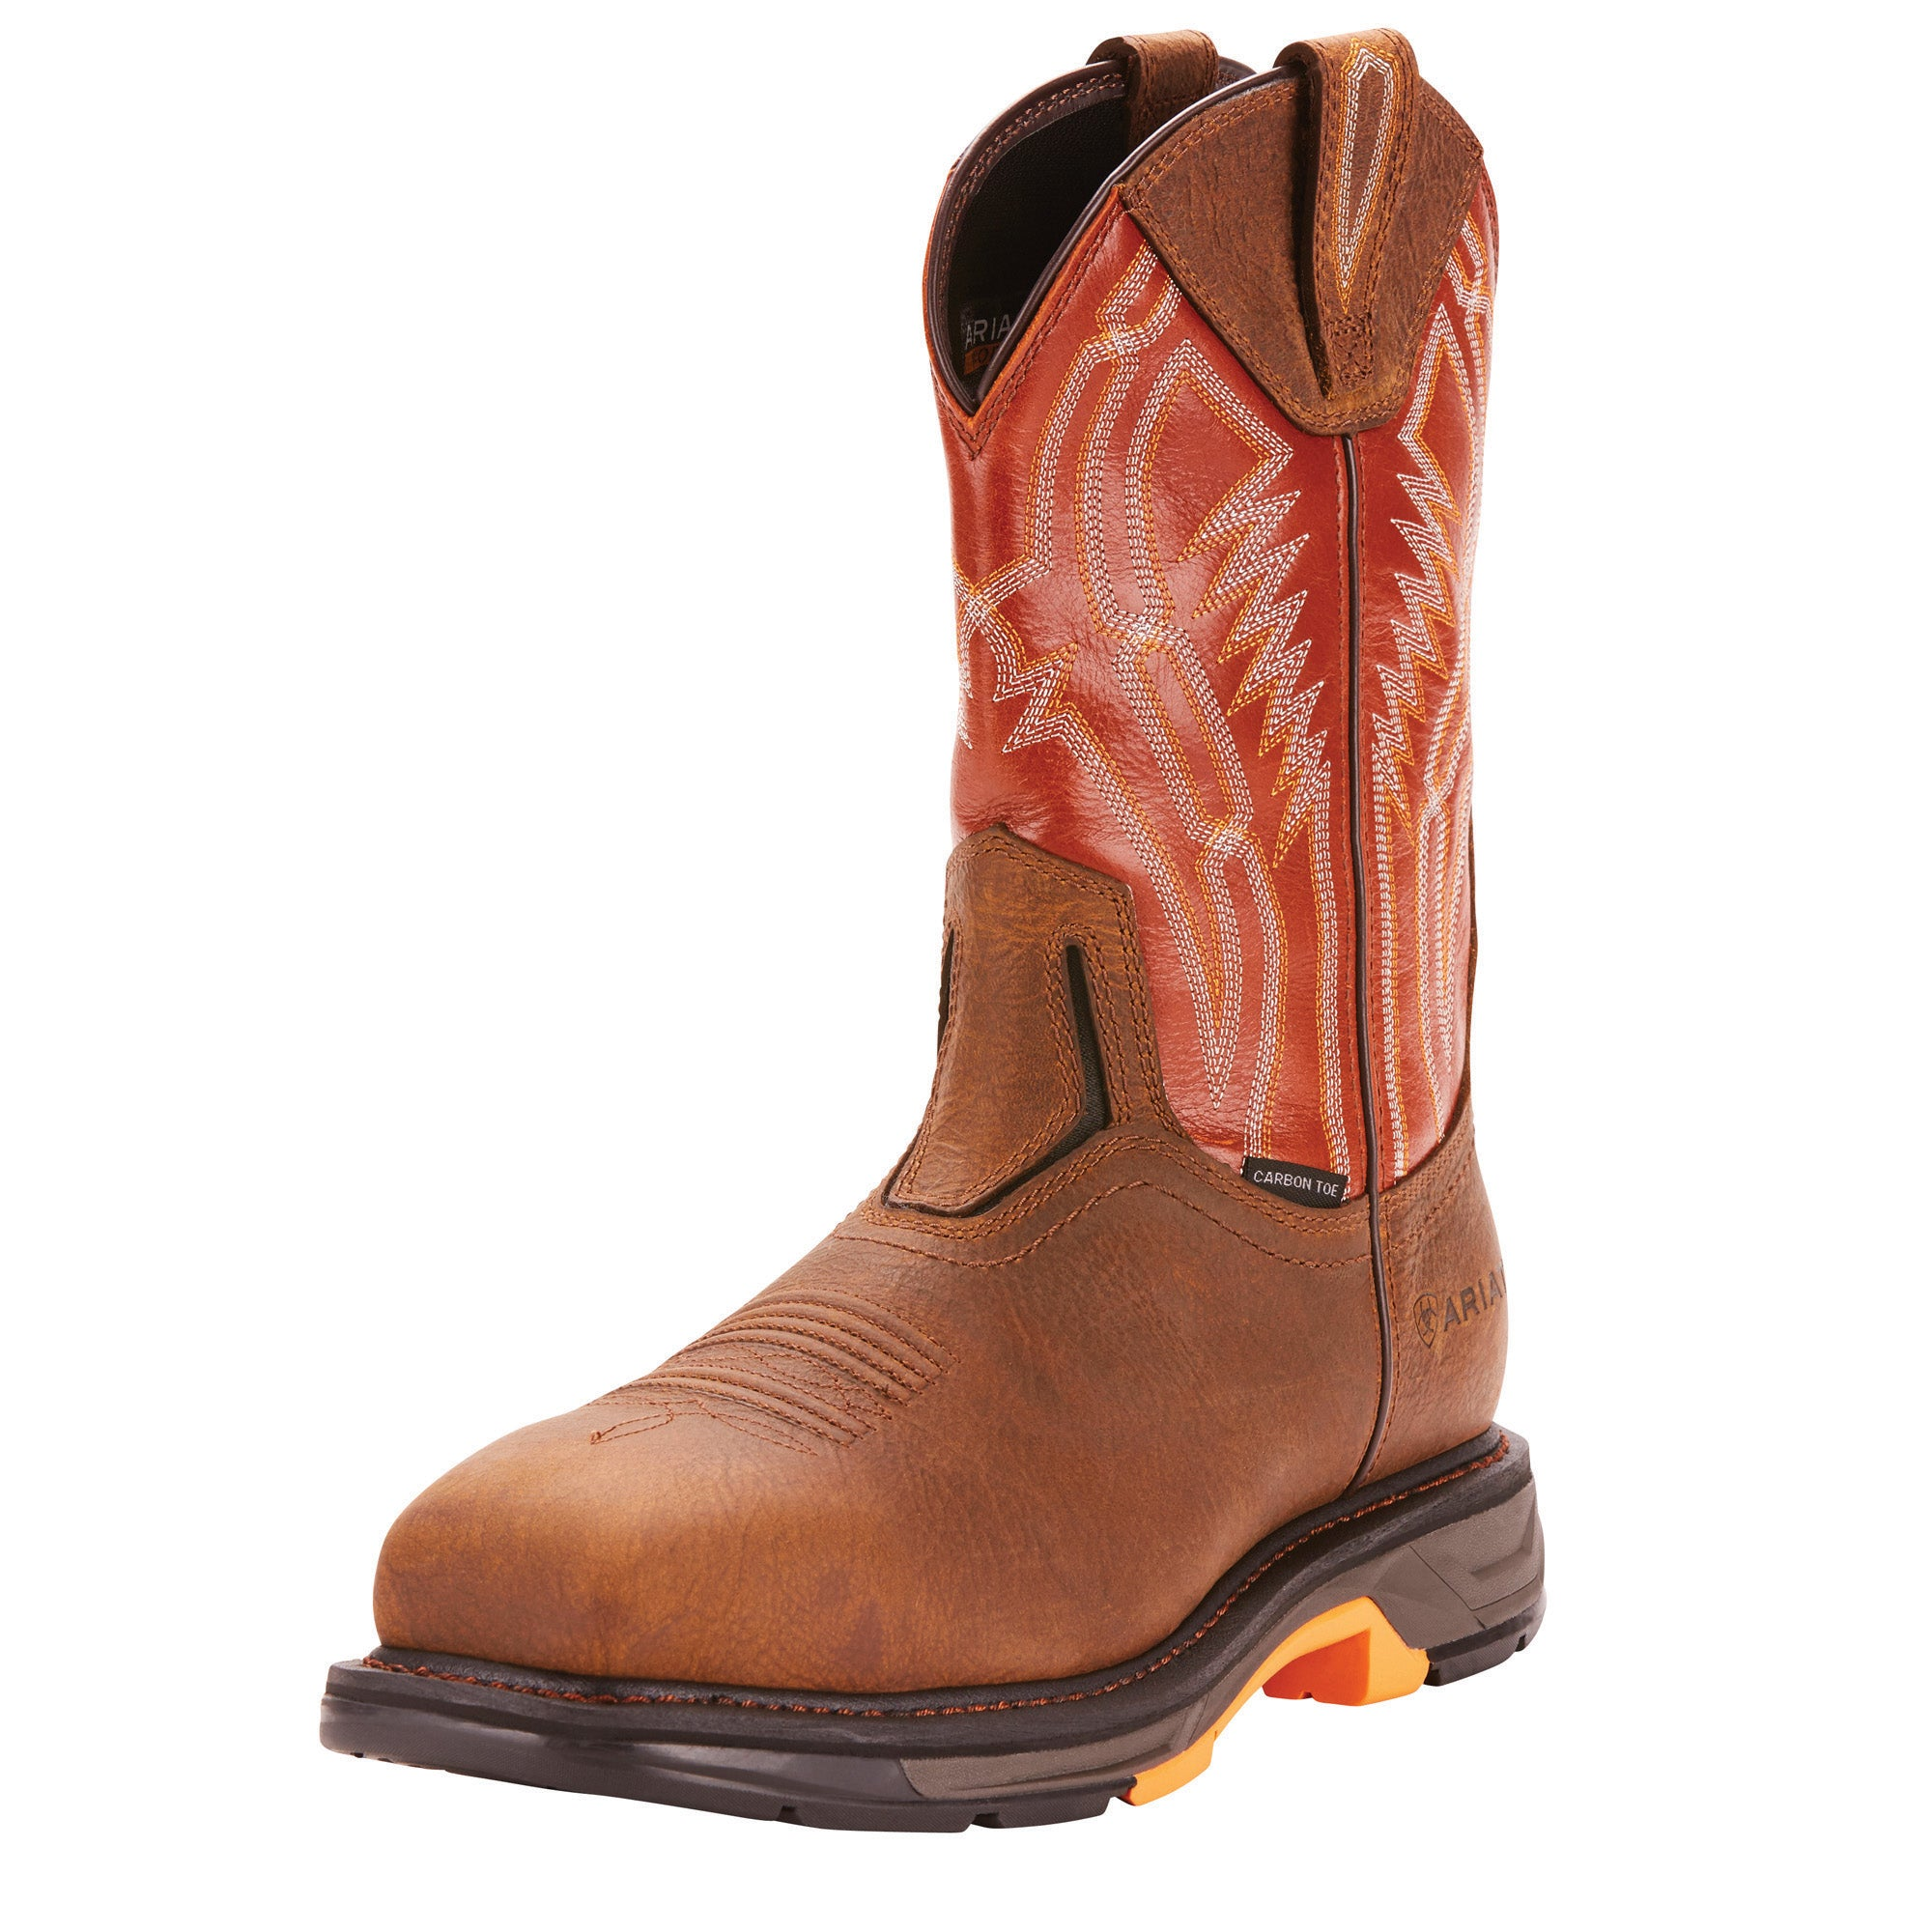 Workhog XT Dare Carbon Toe Cowboy Boot - Rye Brown / Brick